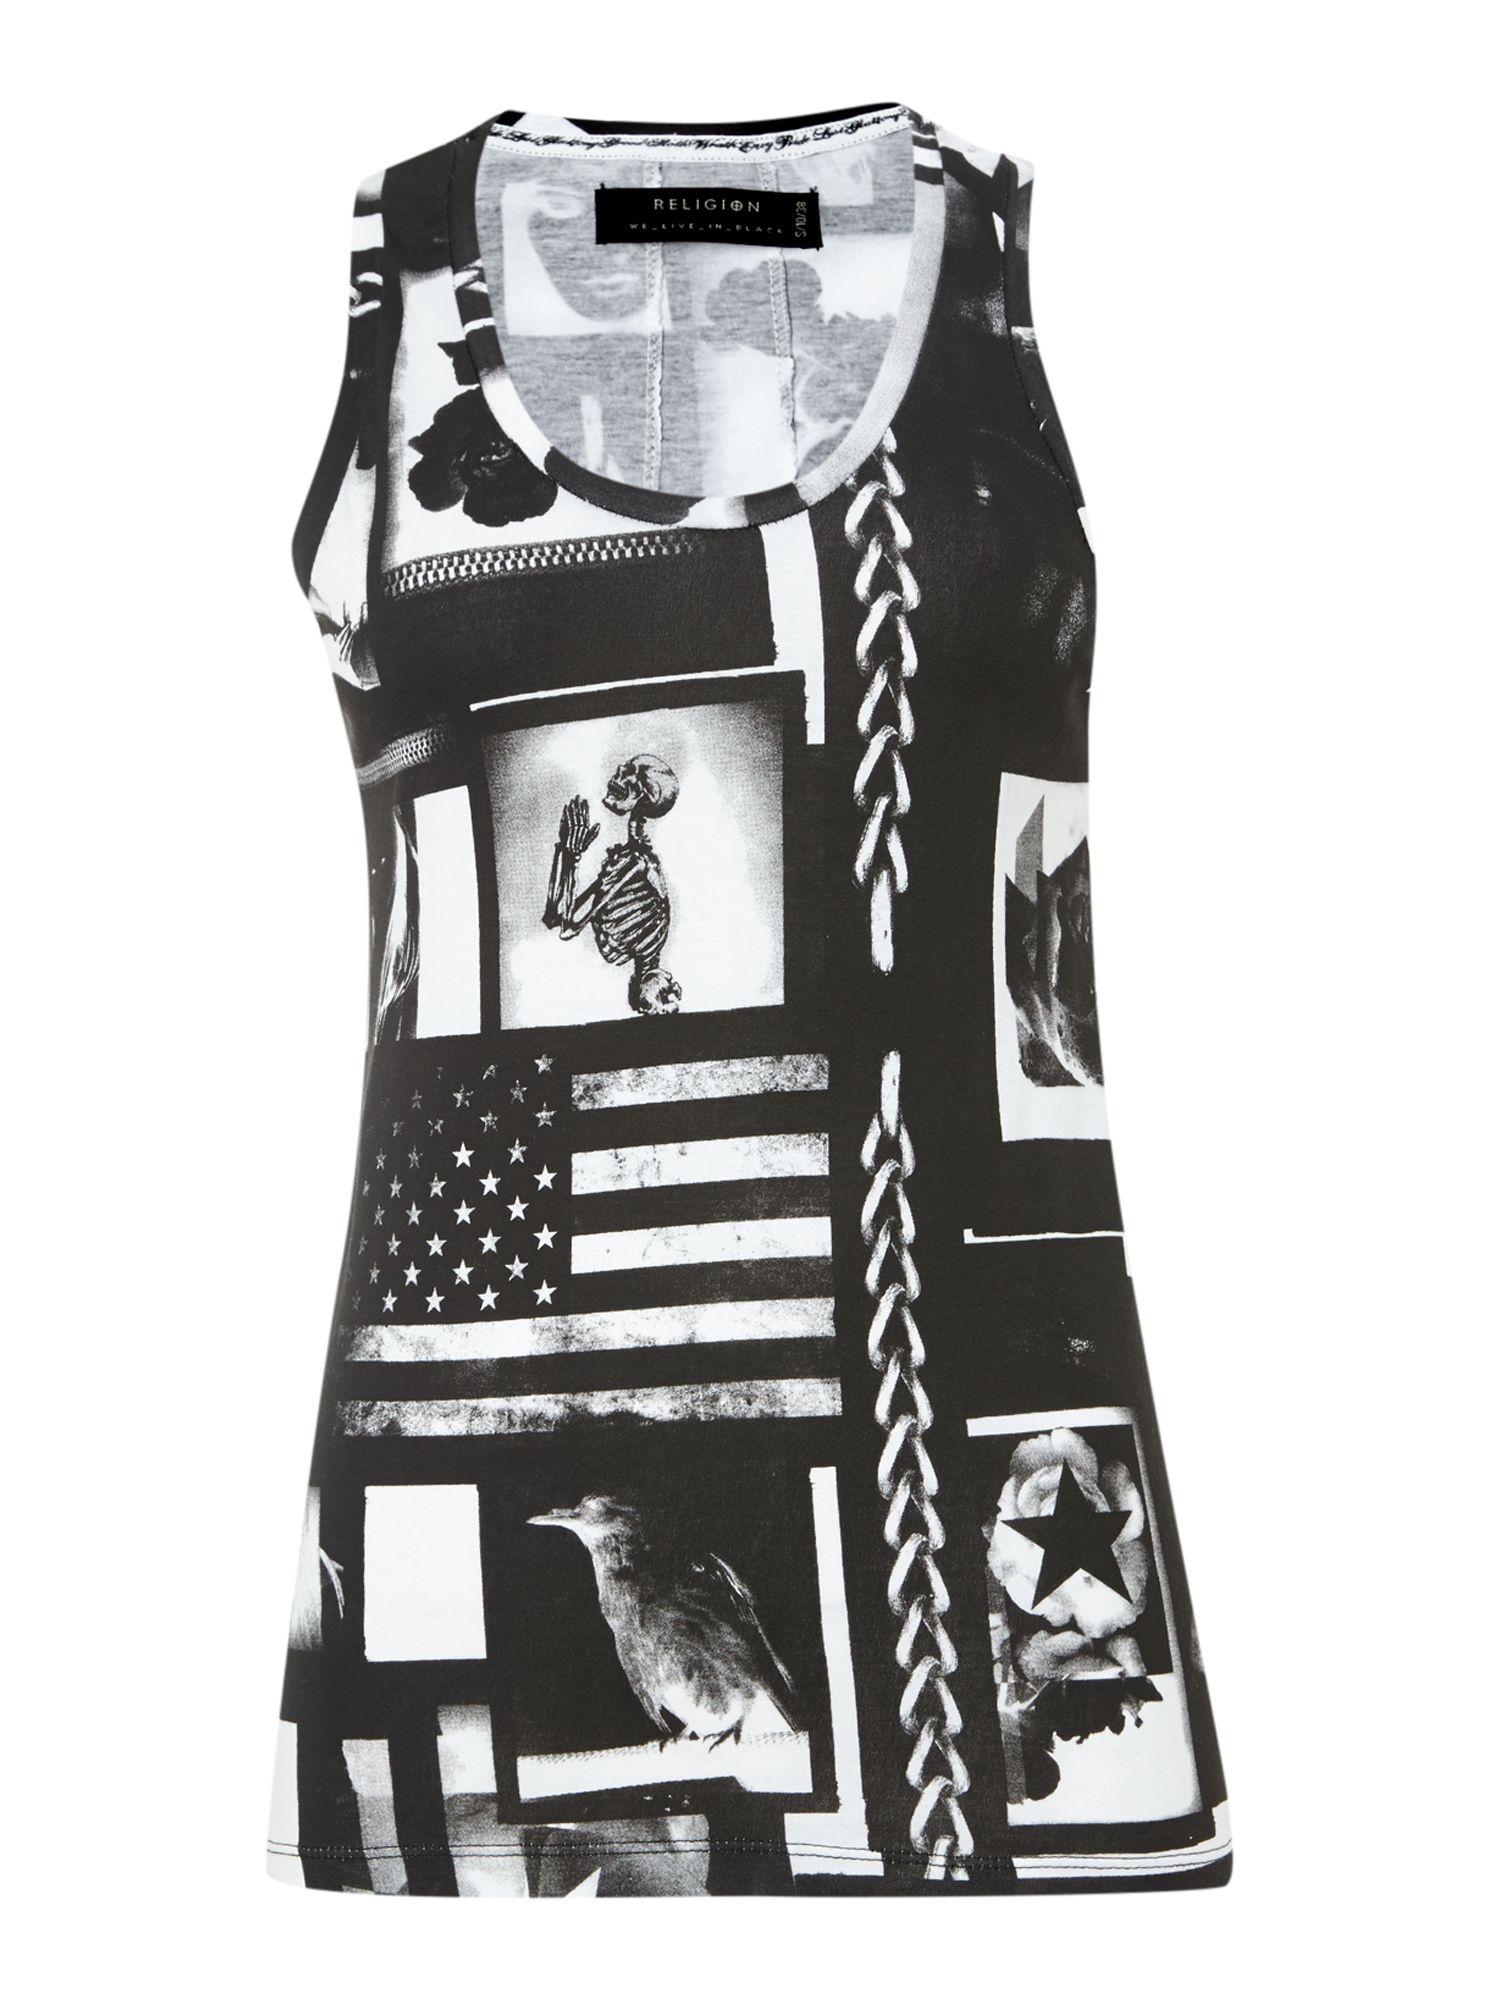 Perception vest